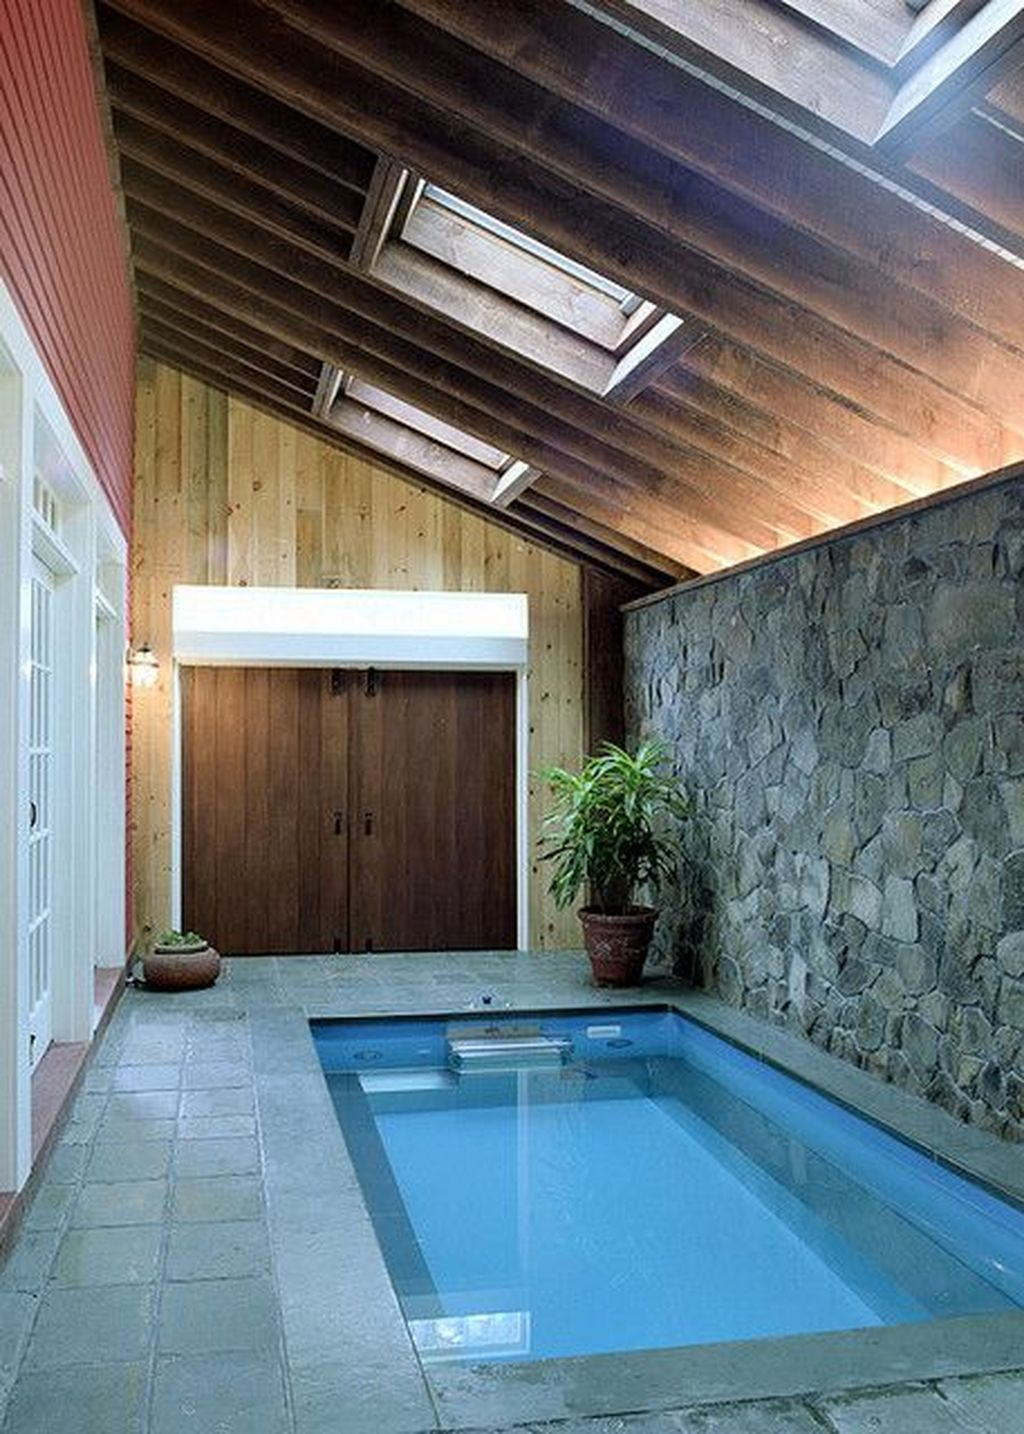 36 Amazing Small Indoor Swimming Pool Design Ideas Small Indoor